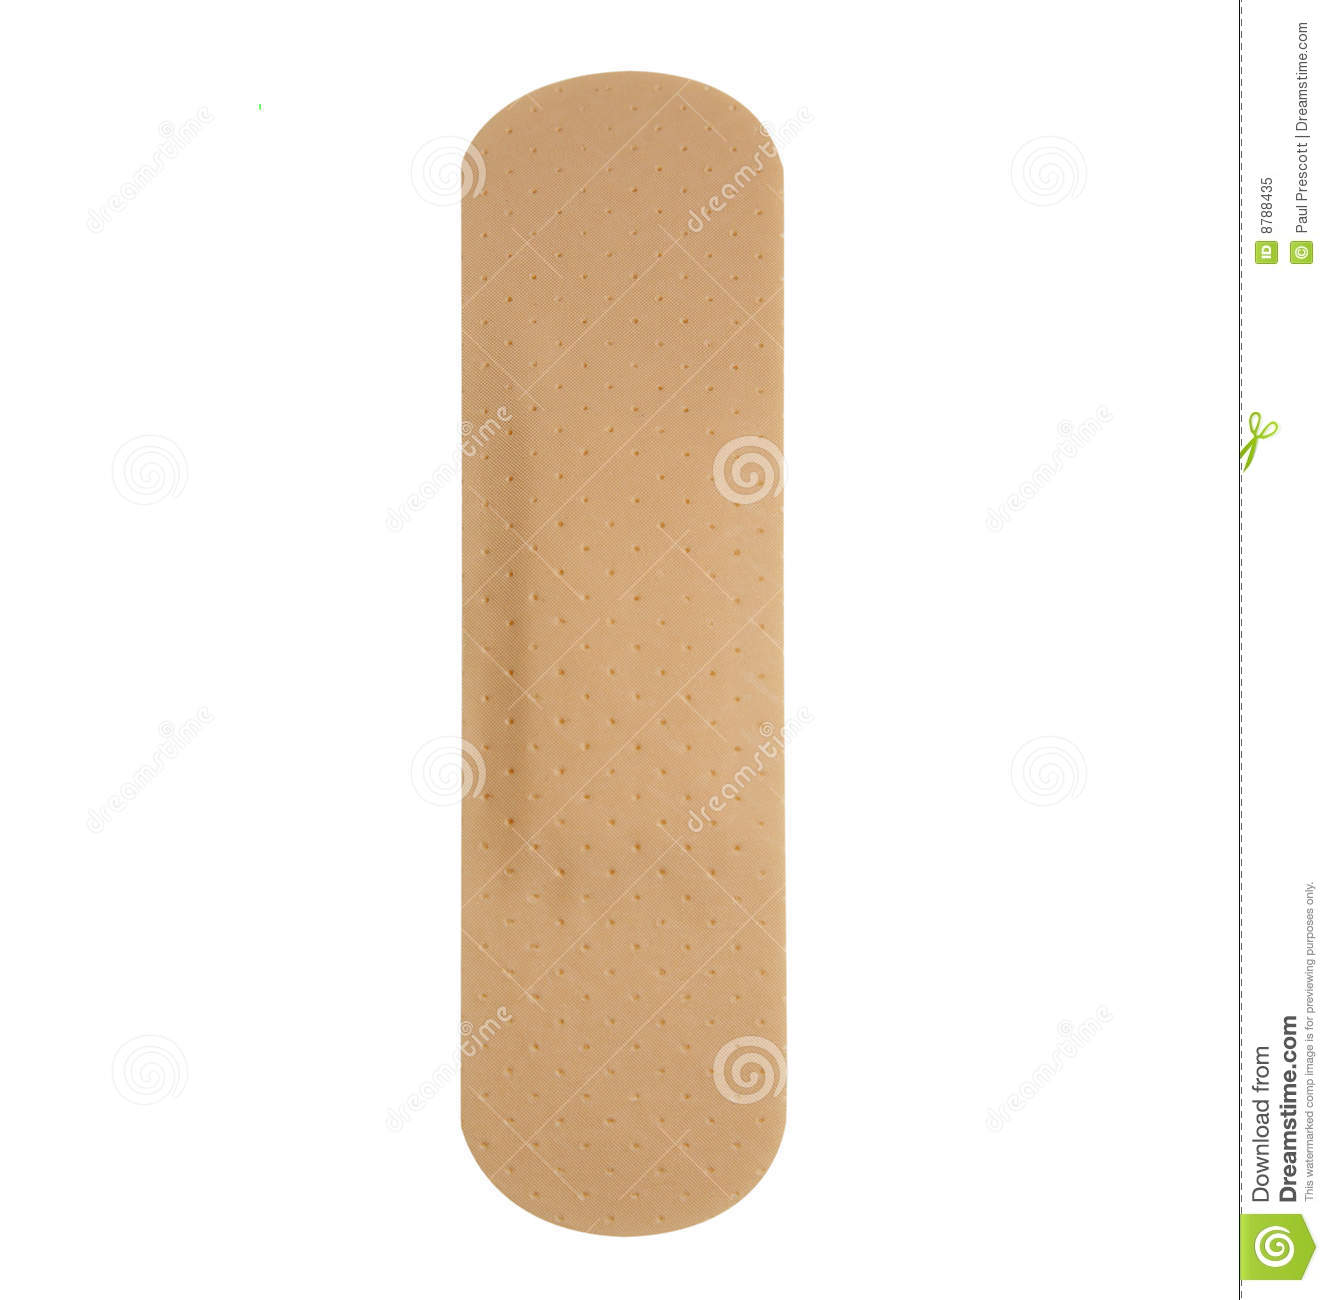 Single plaster band aid